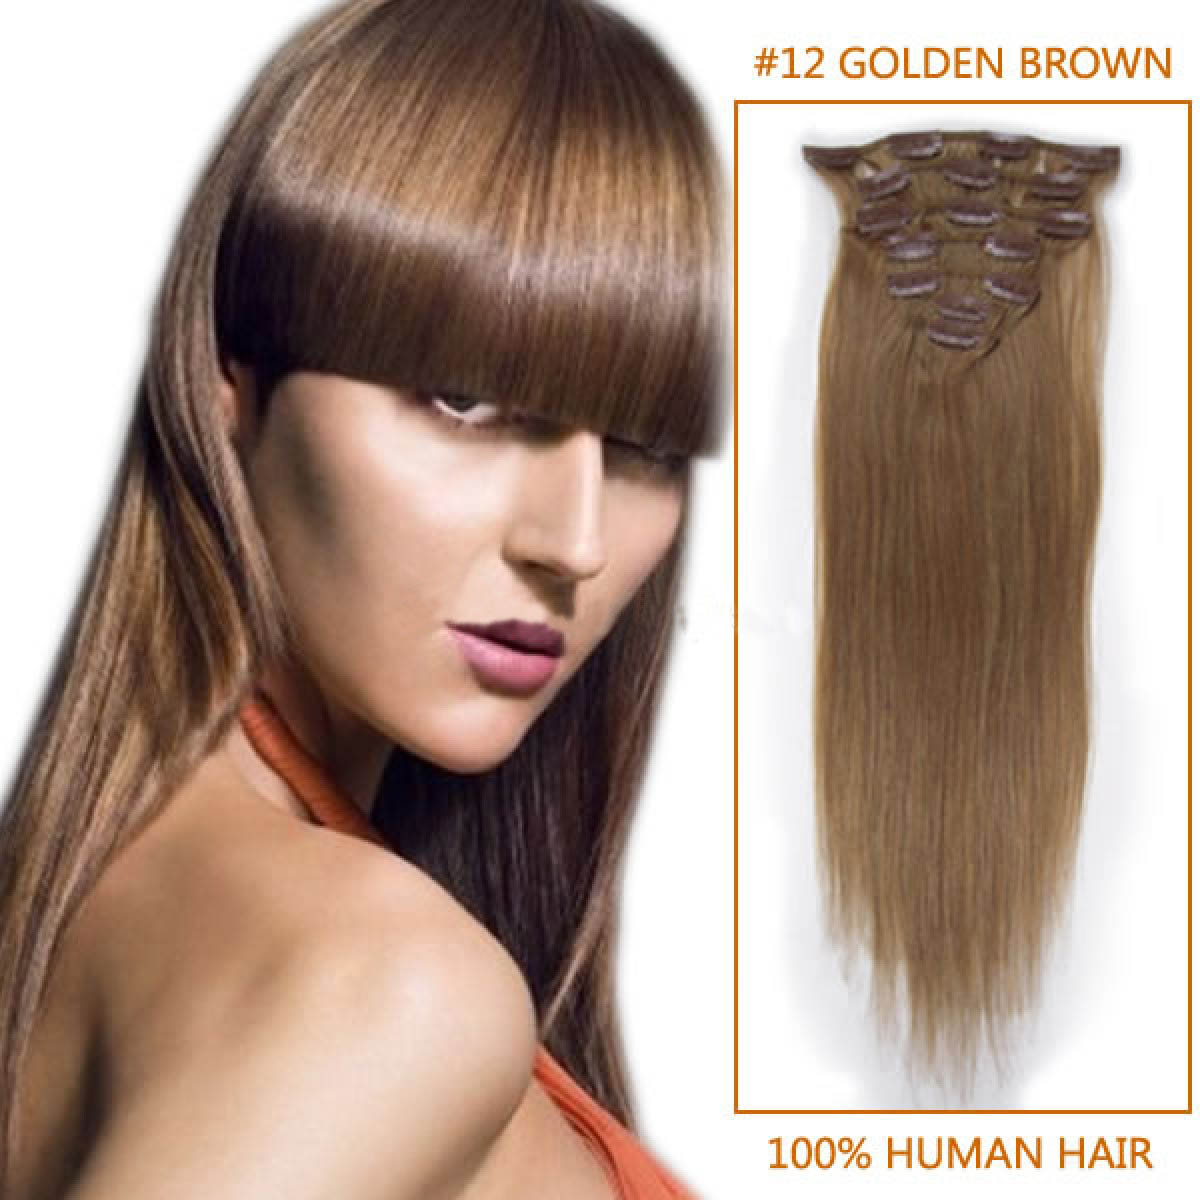 Inch 12 golden brown clip in remy human hair extensions 12pcs 30 inch 12 golden brown clip in remy human hair extensions 12pcs pmusecretfo Gallery